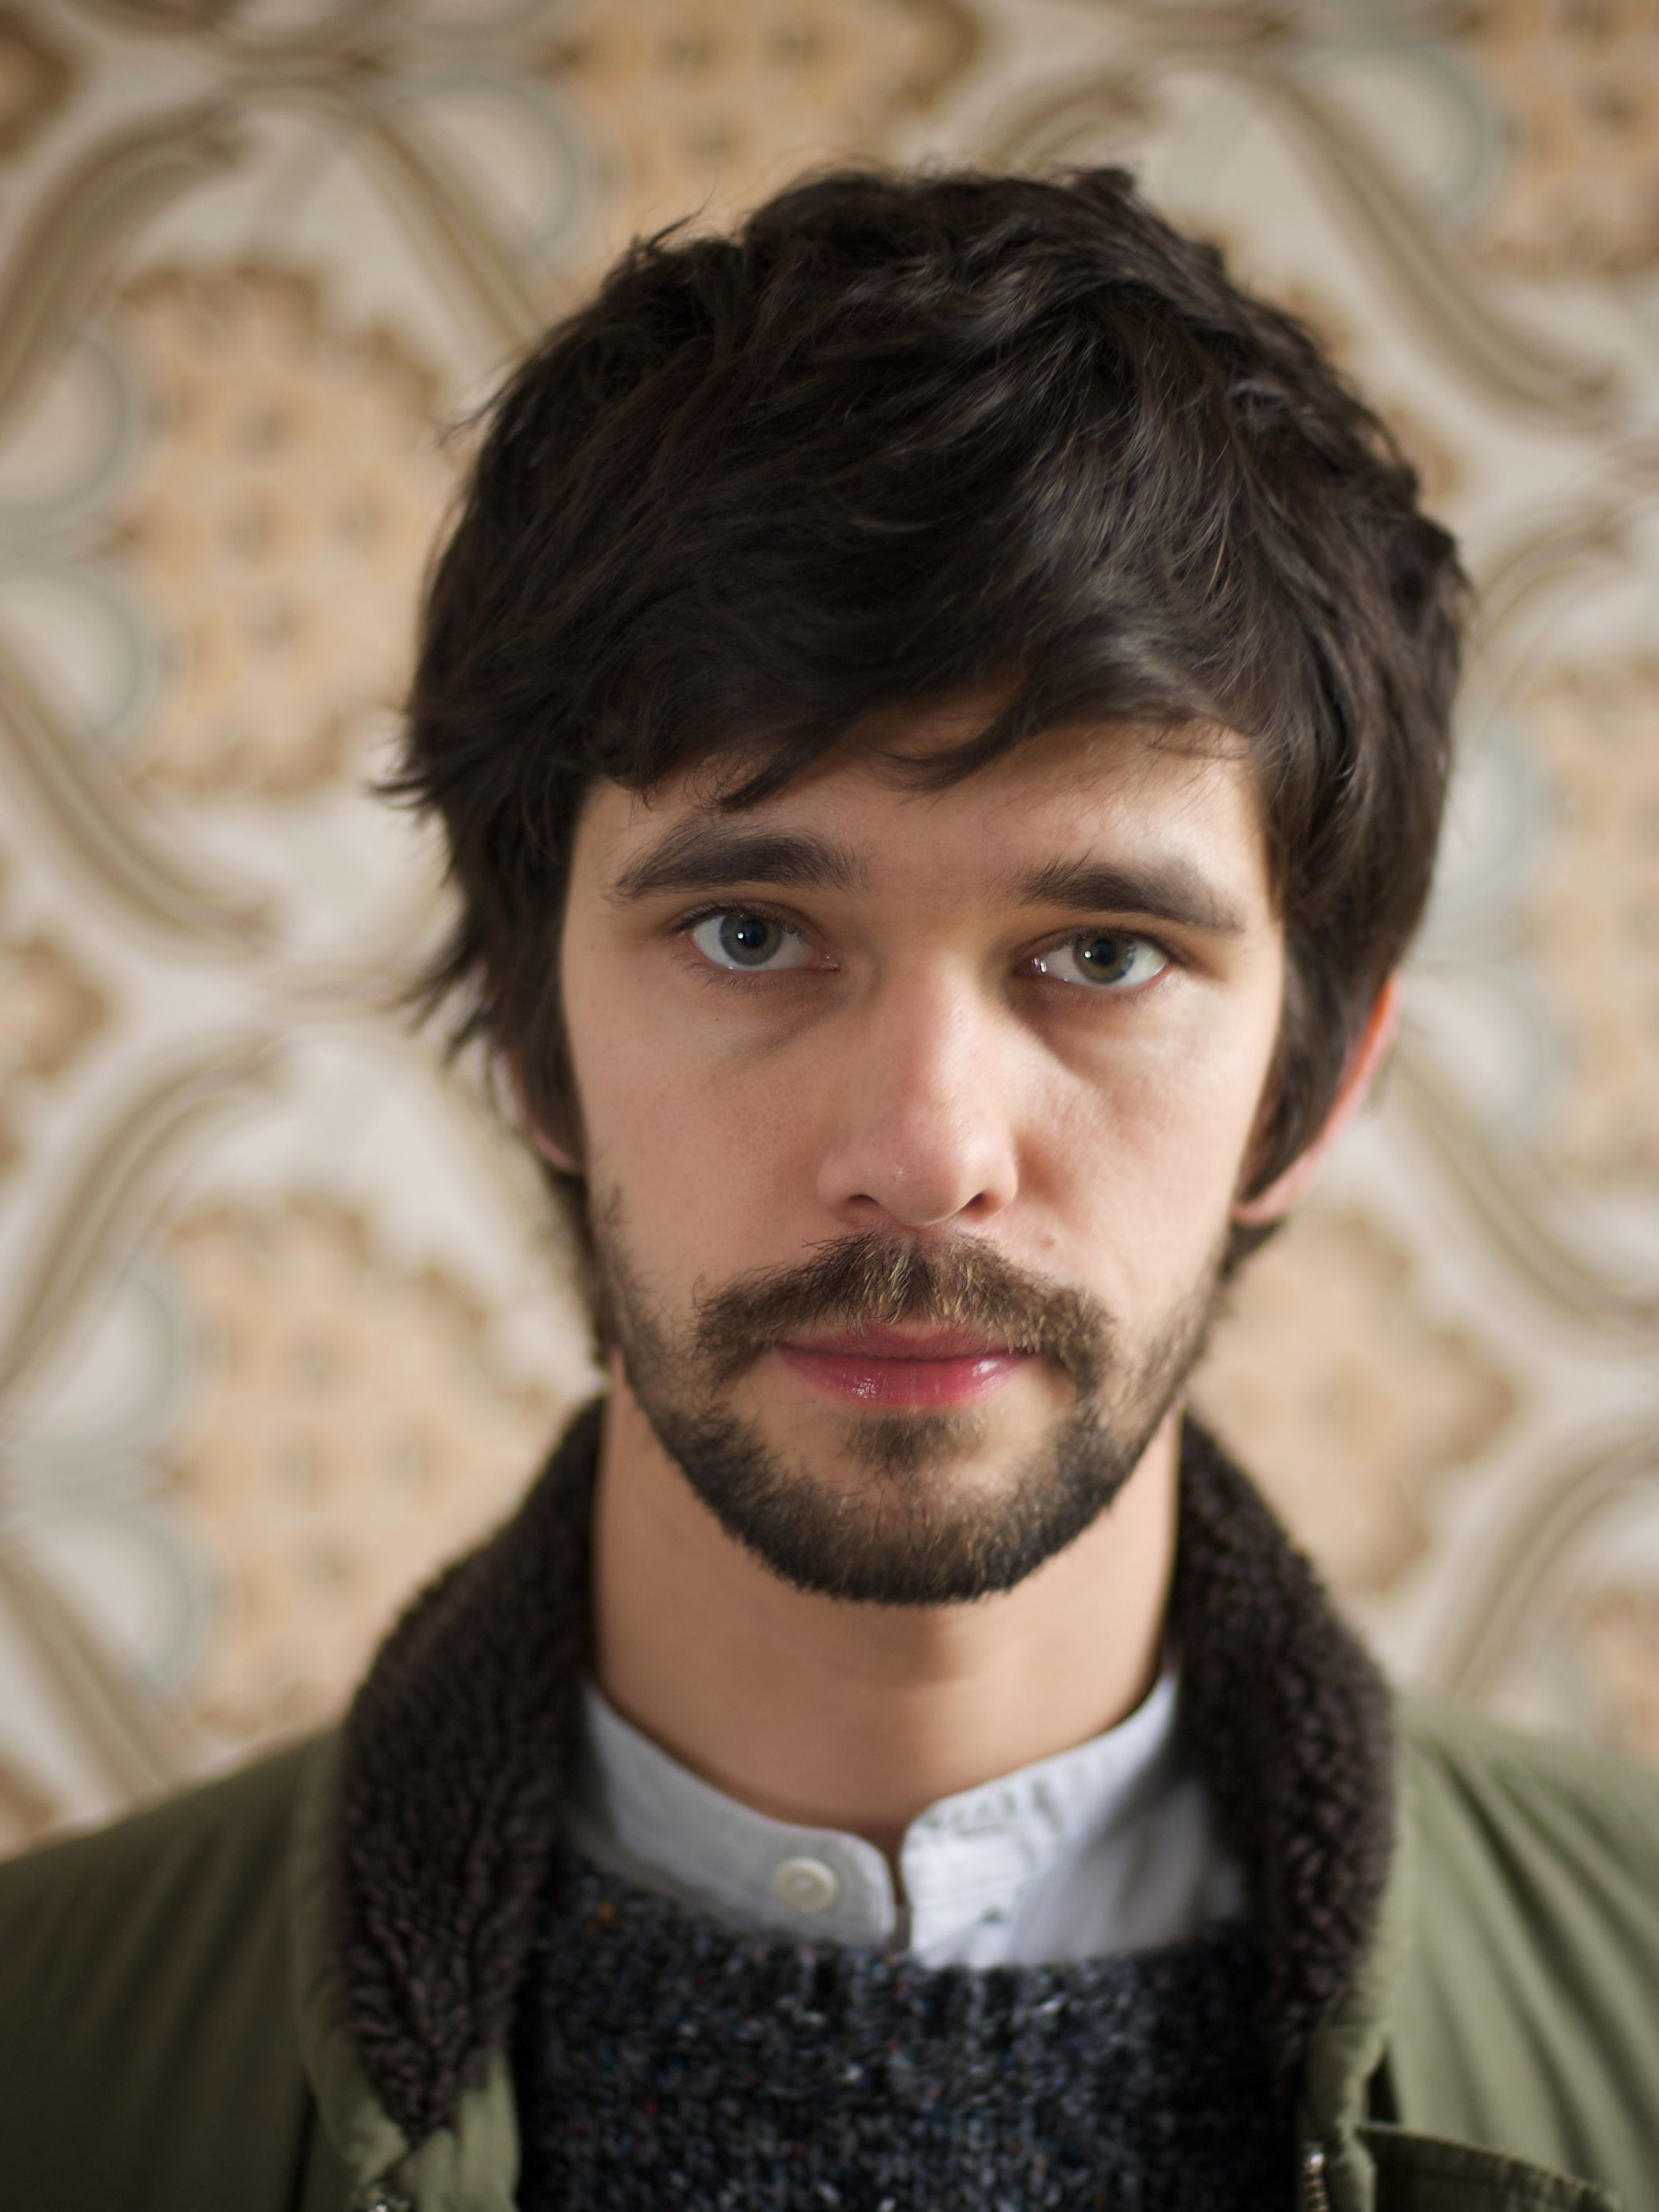 Ben Whishaw (born 1980) nude photos 2019